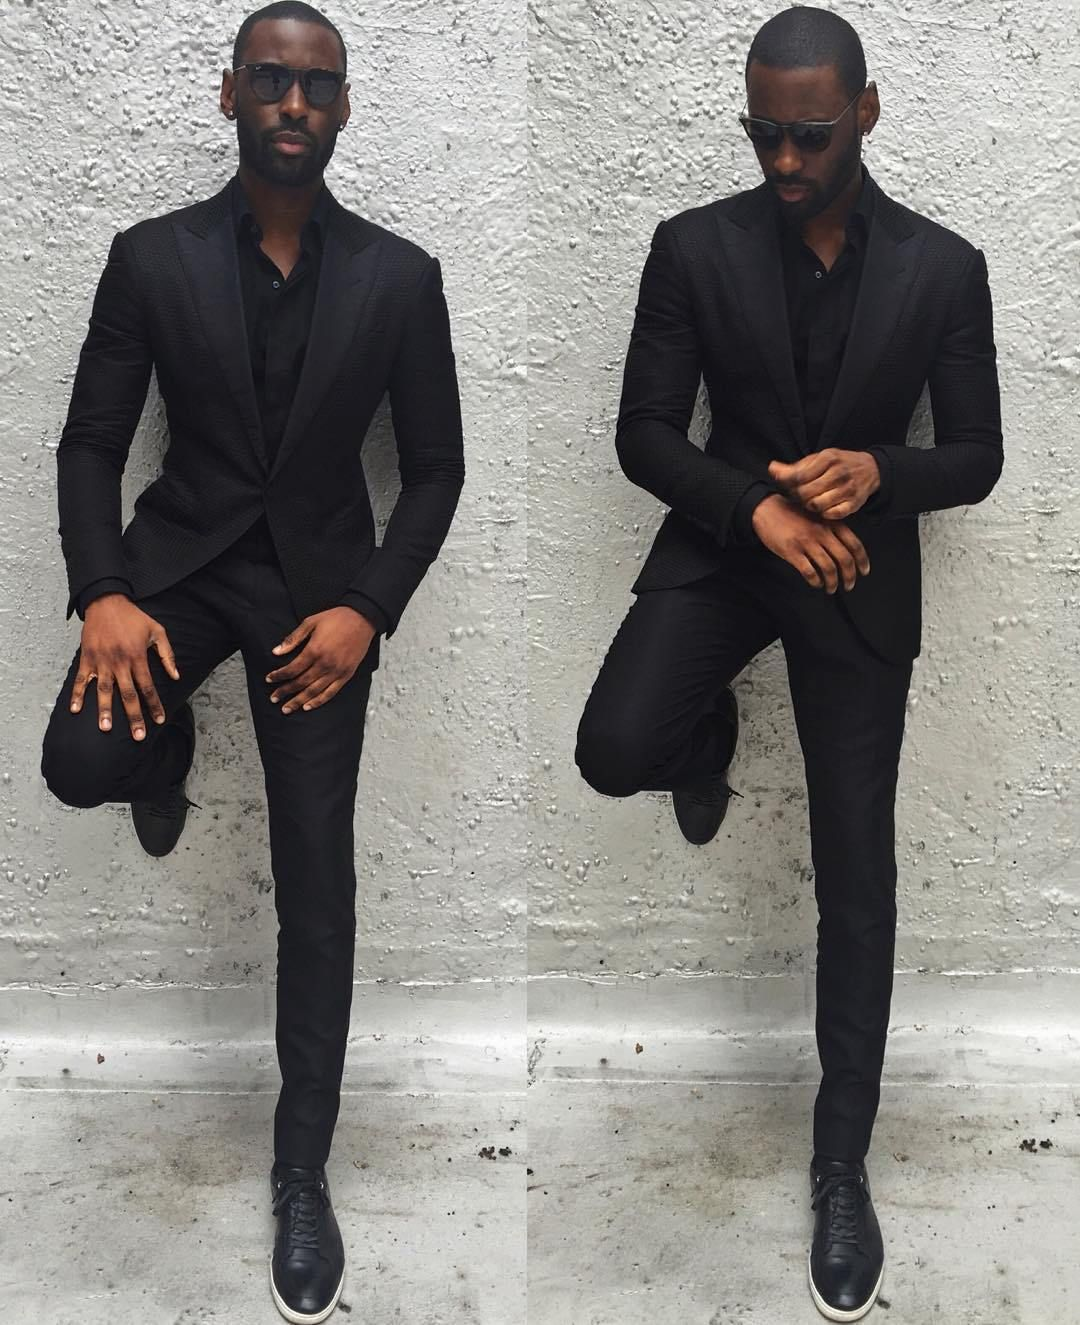 Davidson Frere black suit | Style. | Pinterest | Black suits, Black ...